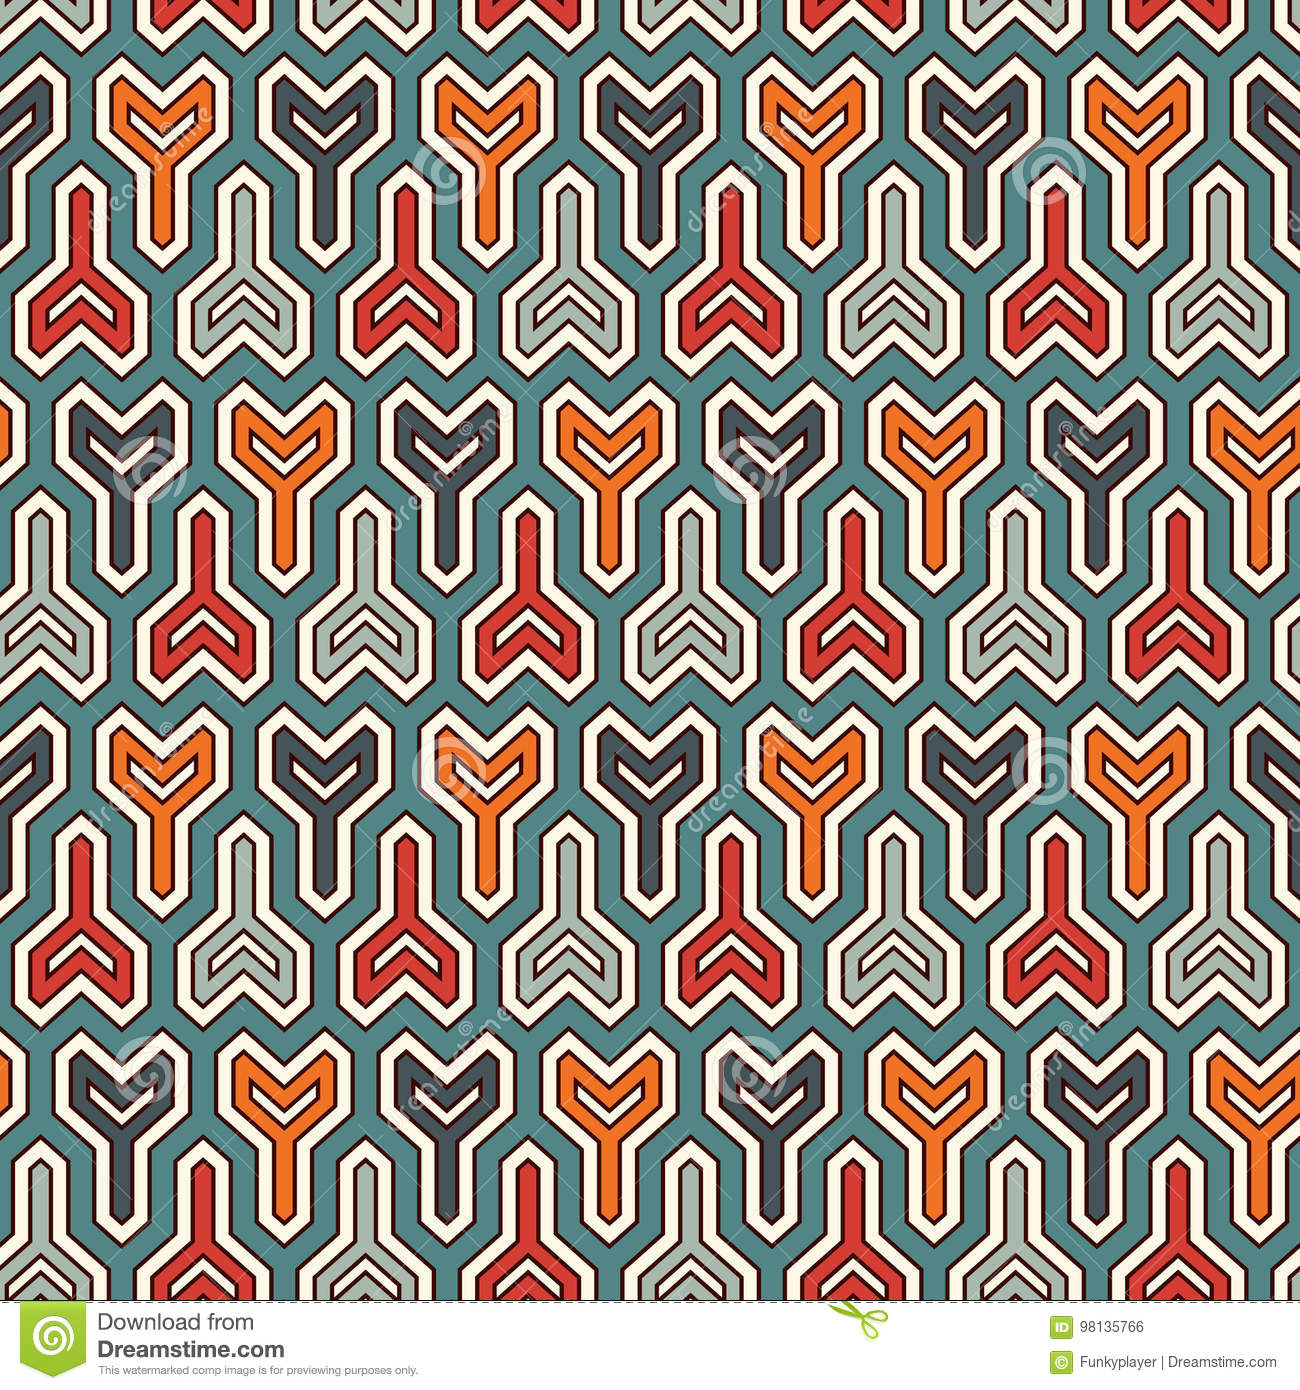 Interlocking three pronged blocks background. Winder keys motif. Ethnic seamless surface pattern with geometric figures.